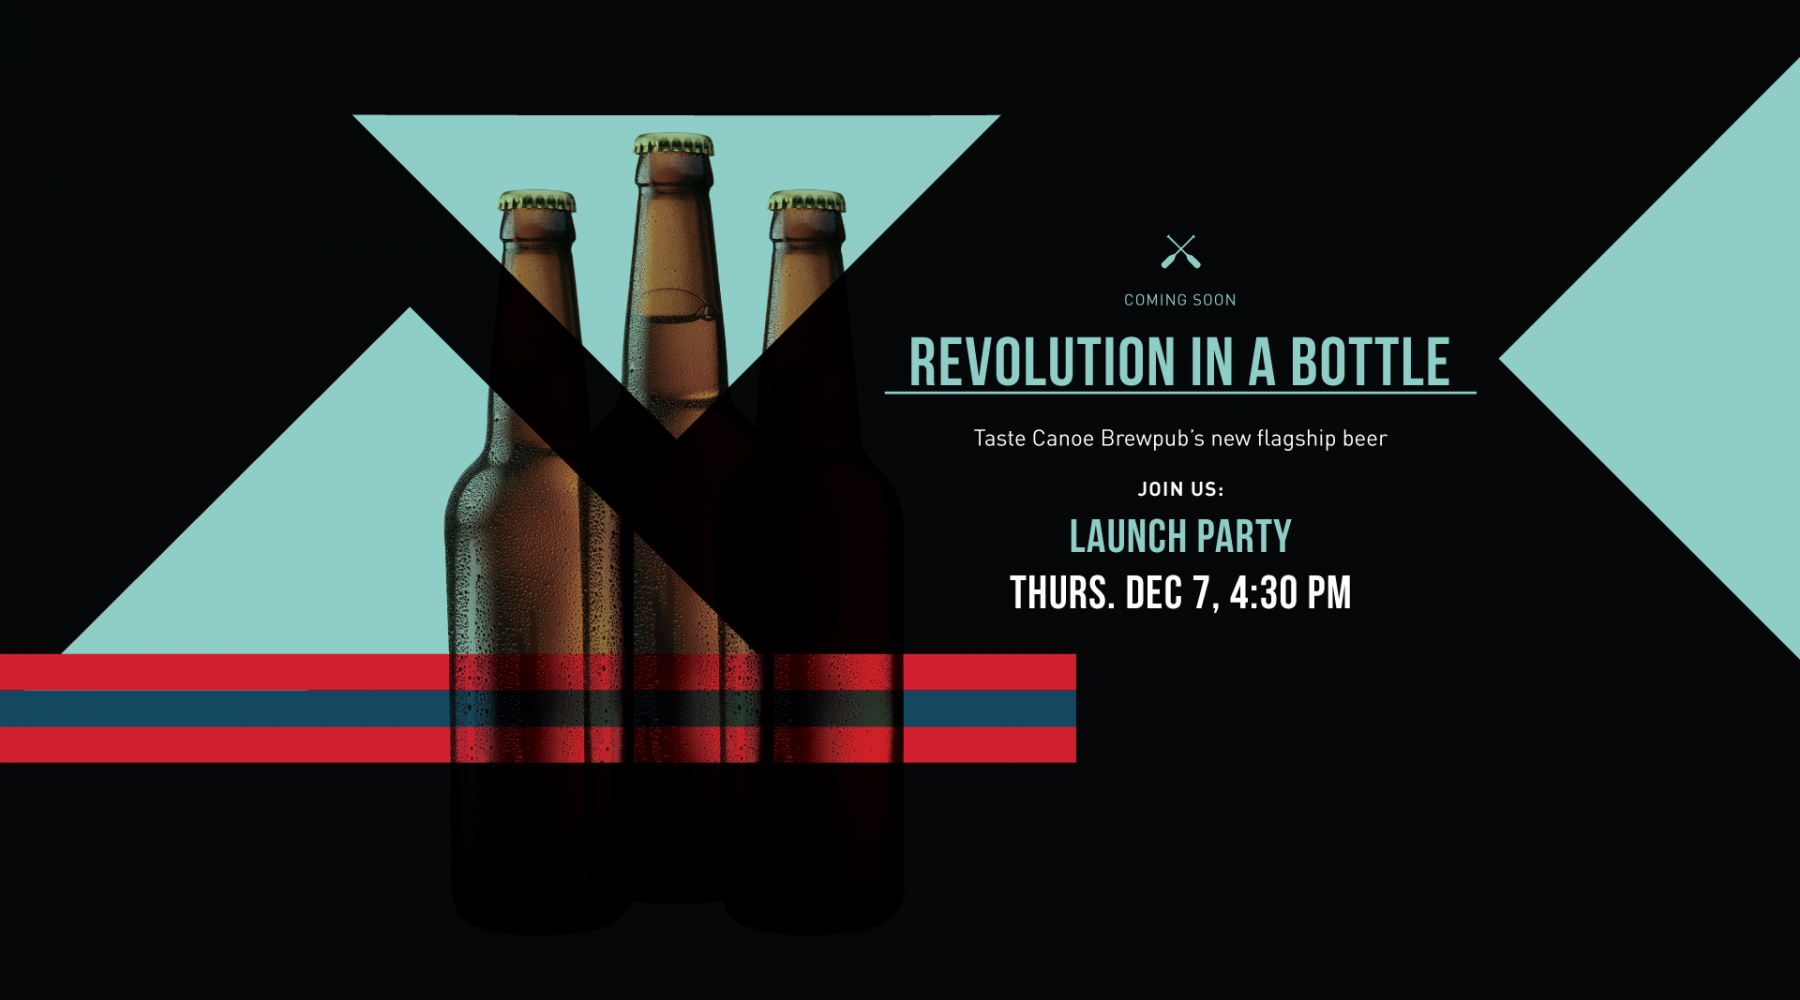 Canoe Brewpub's Revolution in a Bottle Contest